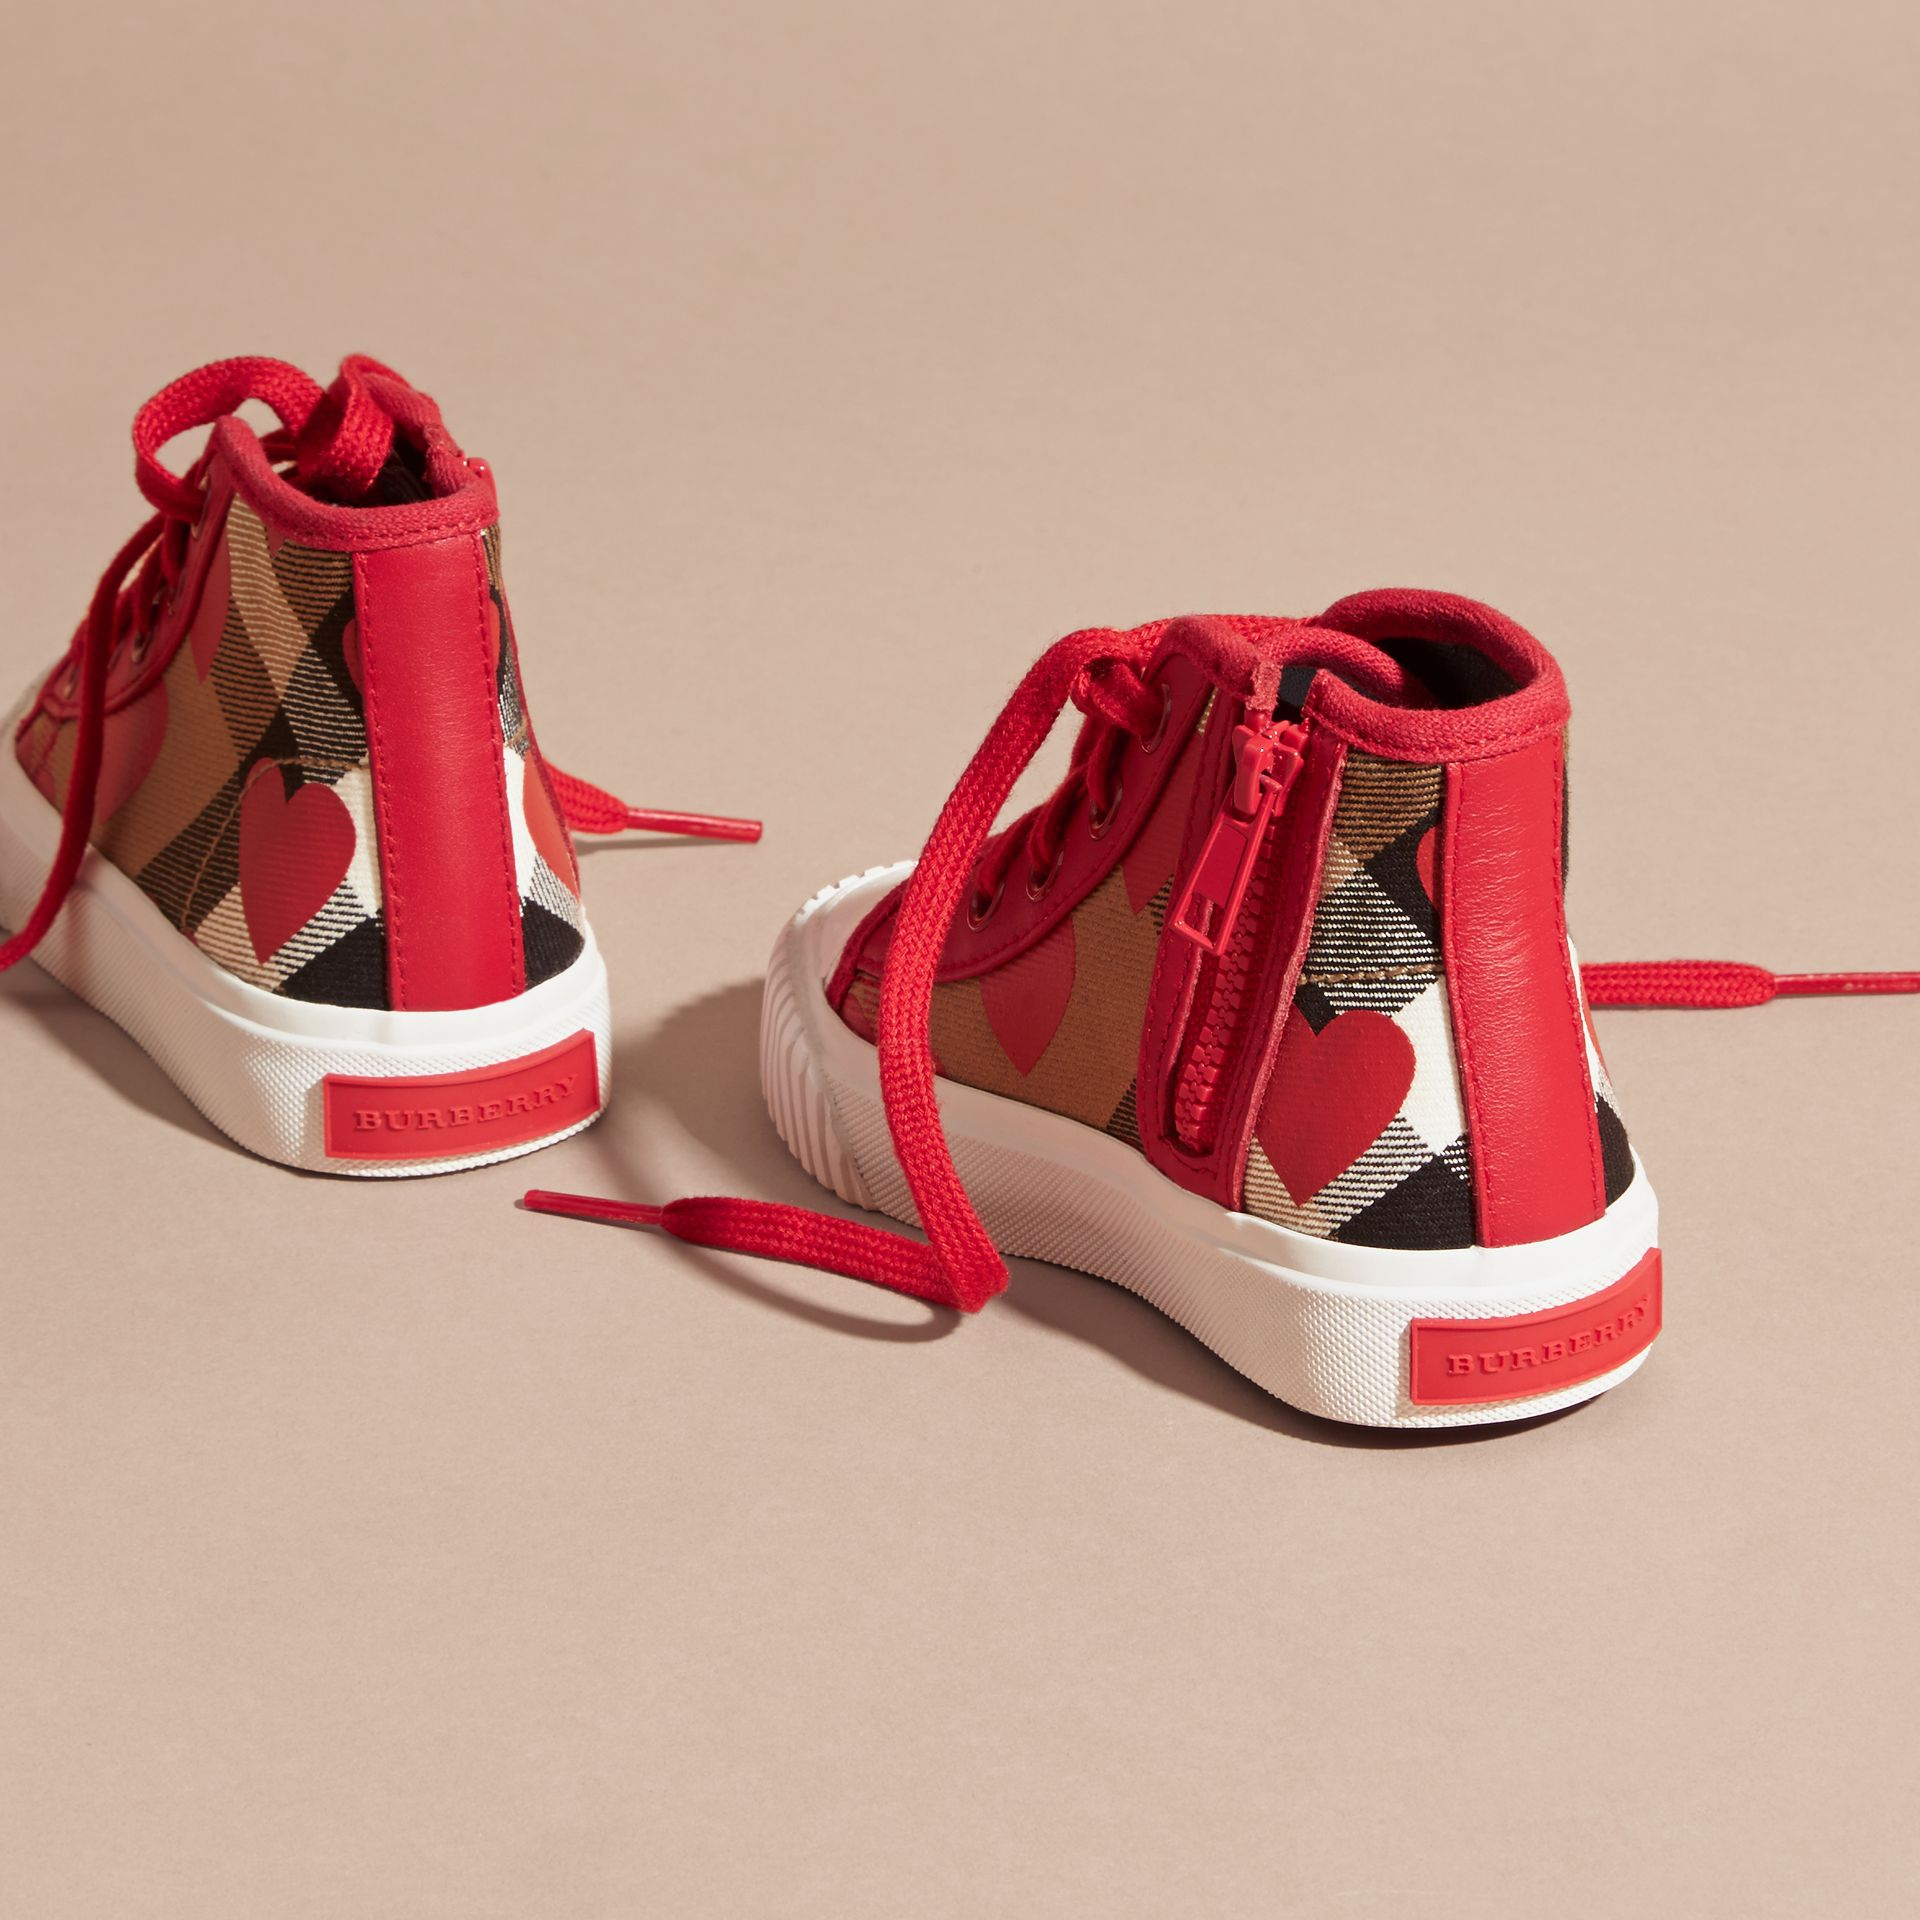 Military red Leather Trim Heart Print Check High-top Trainers Military Red - gallery image 4